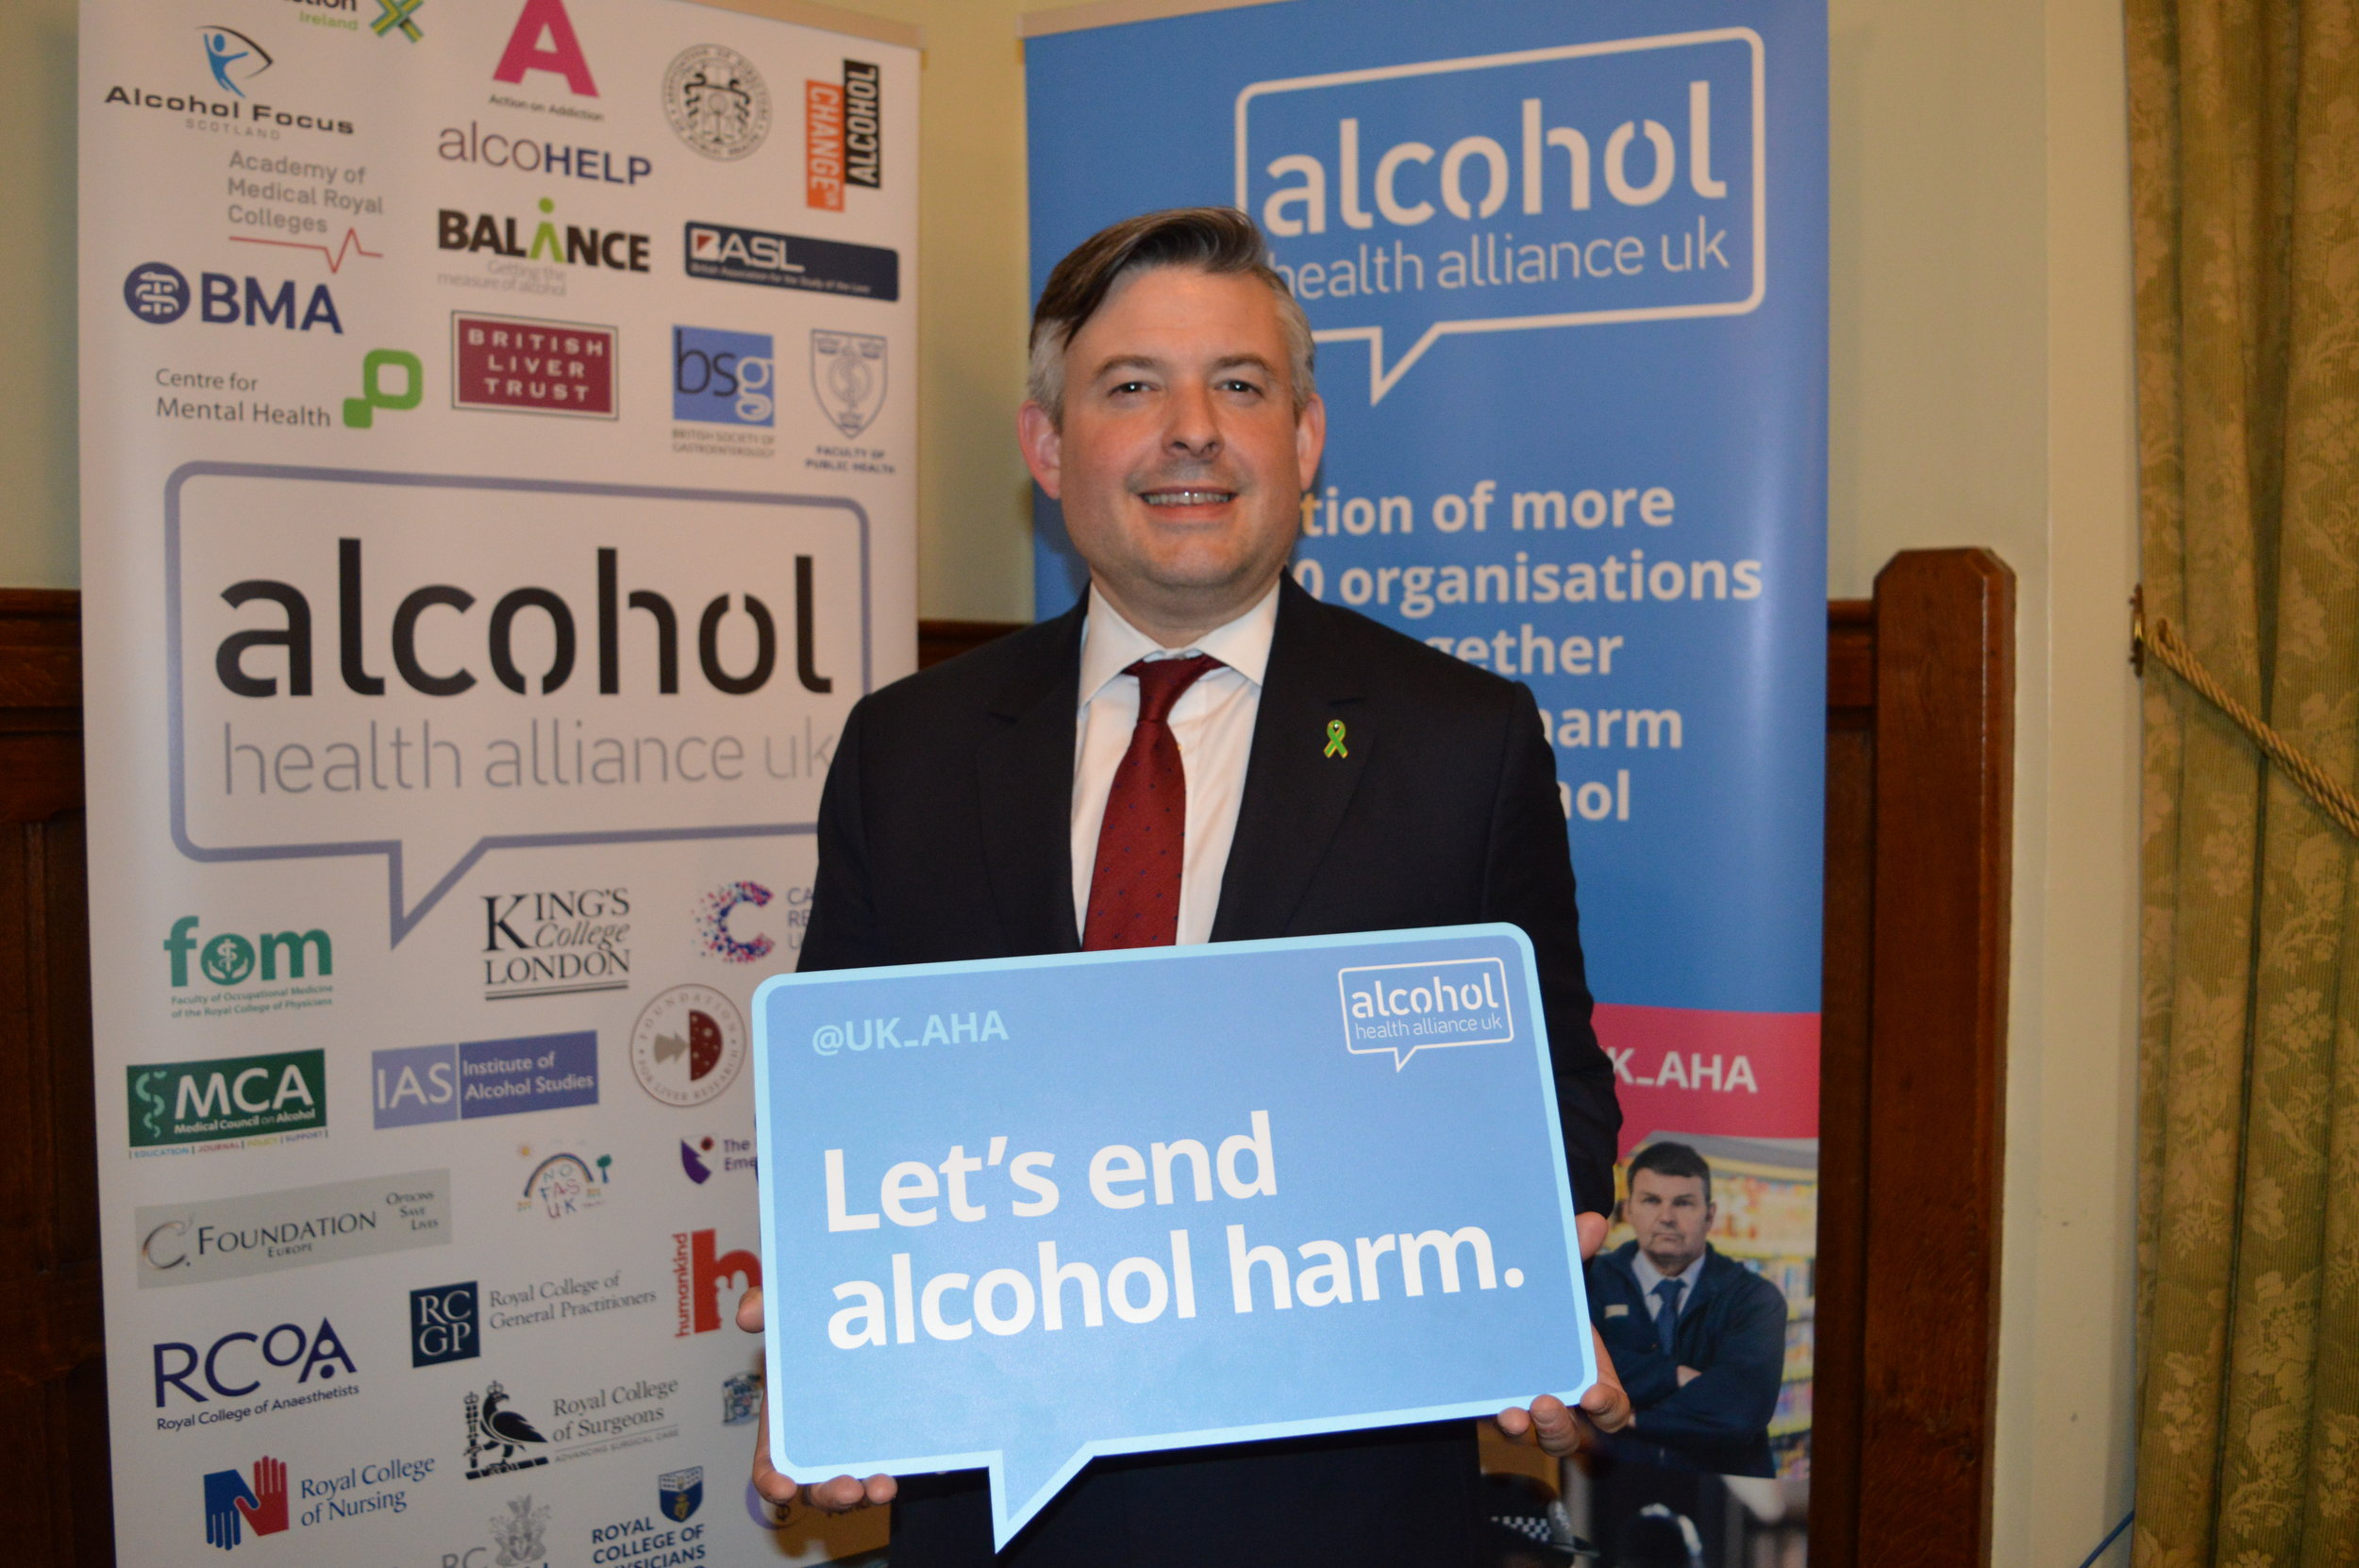 Yesterday Jon spoke at the Alcohol Health Alliance UK event to celebrate the recent strides forward in alcohol policy - Wednesday May 15 2019